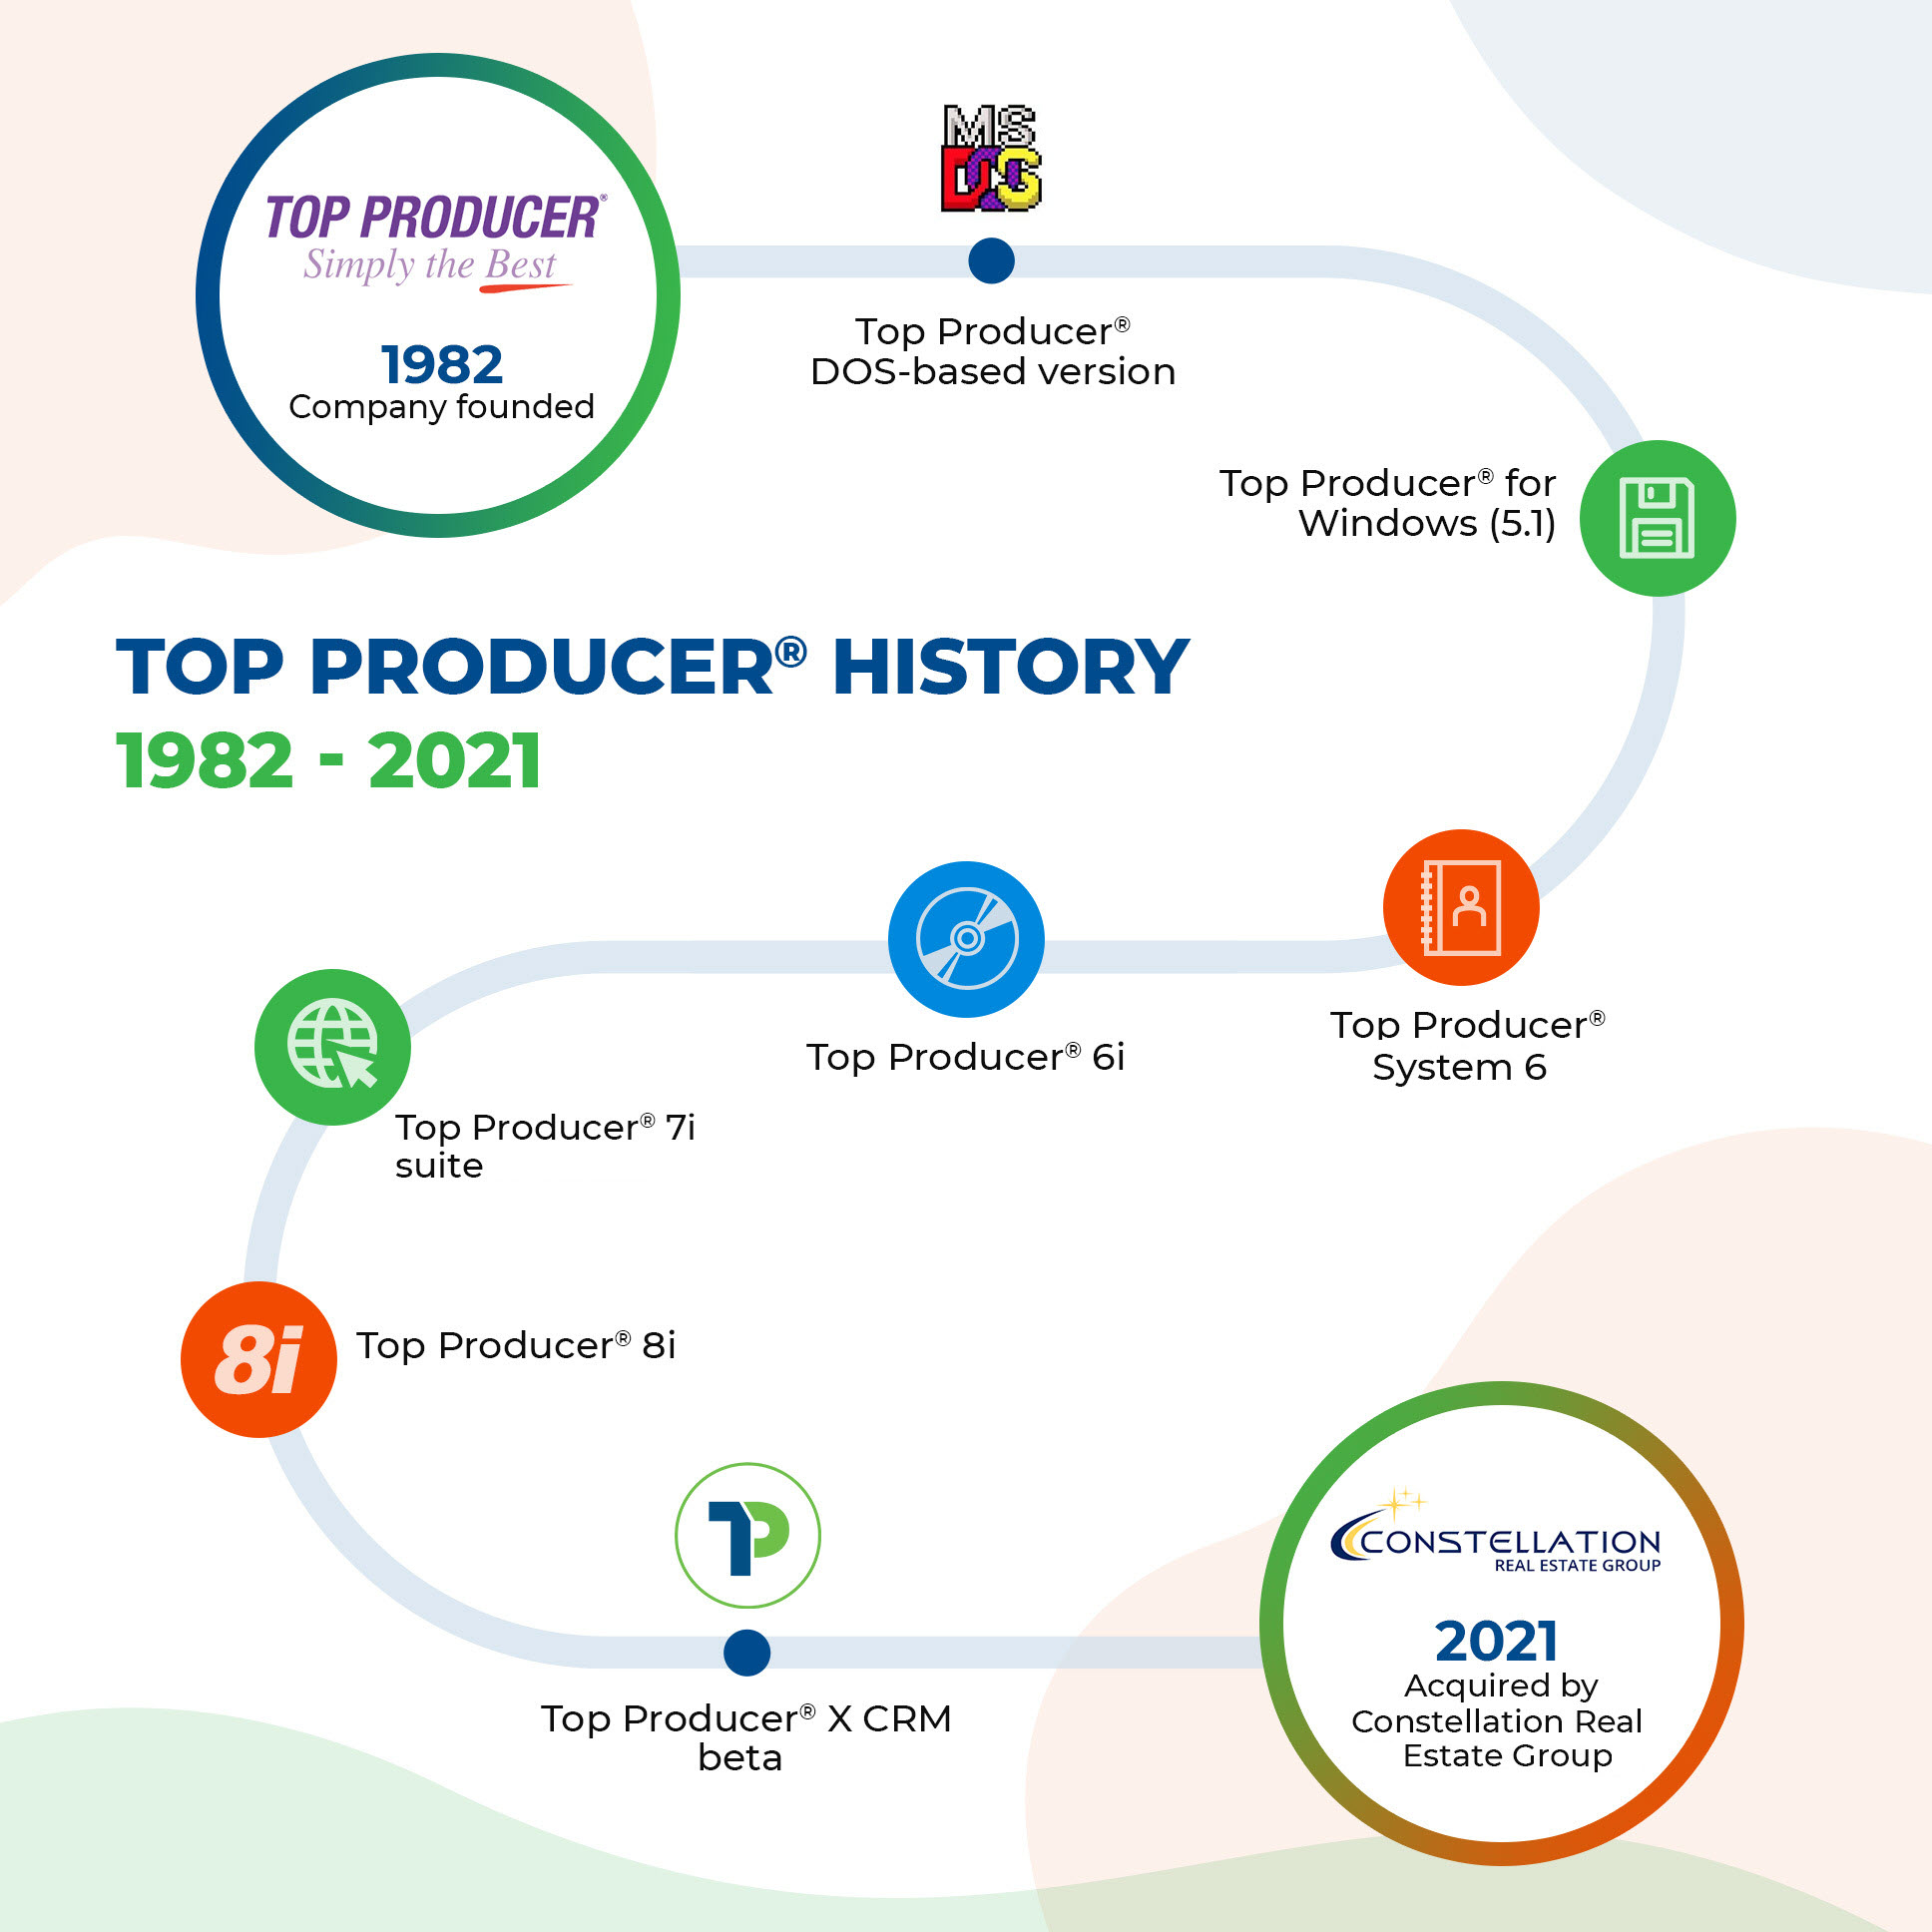 Top Producer® history